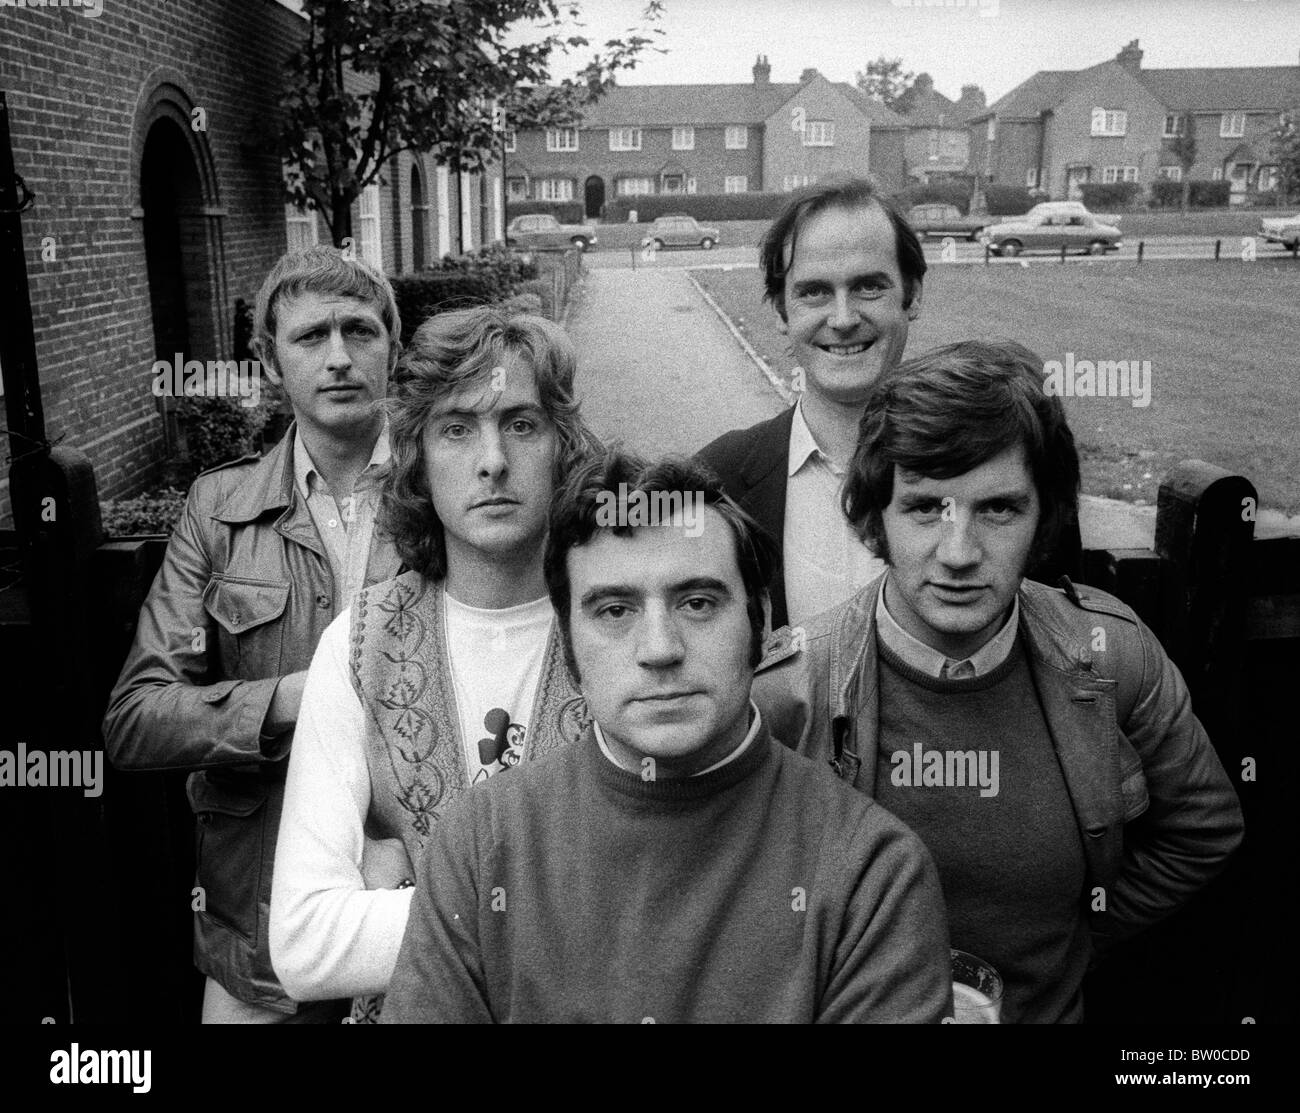 Monty Python The Royal Philharmonic Orchestra Goes To The Bathroom: The Cast Of Monty Python's Flying Circus During Rehearsals